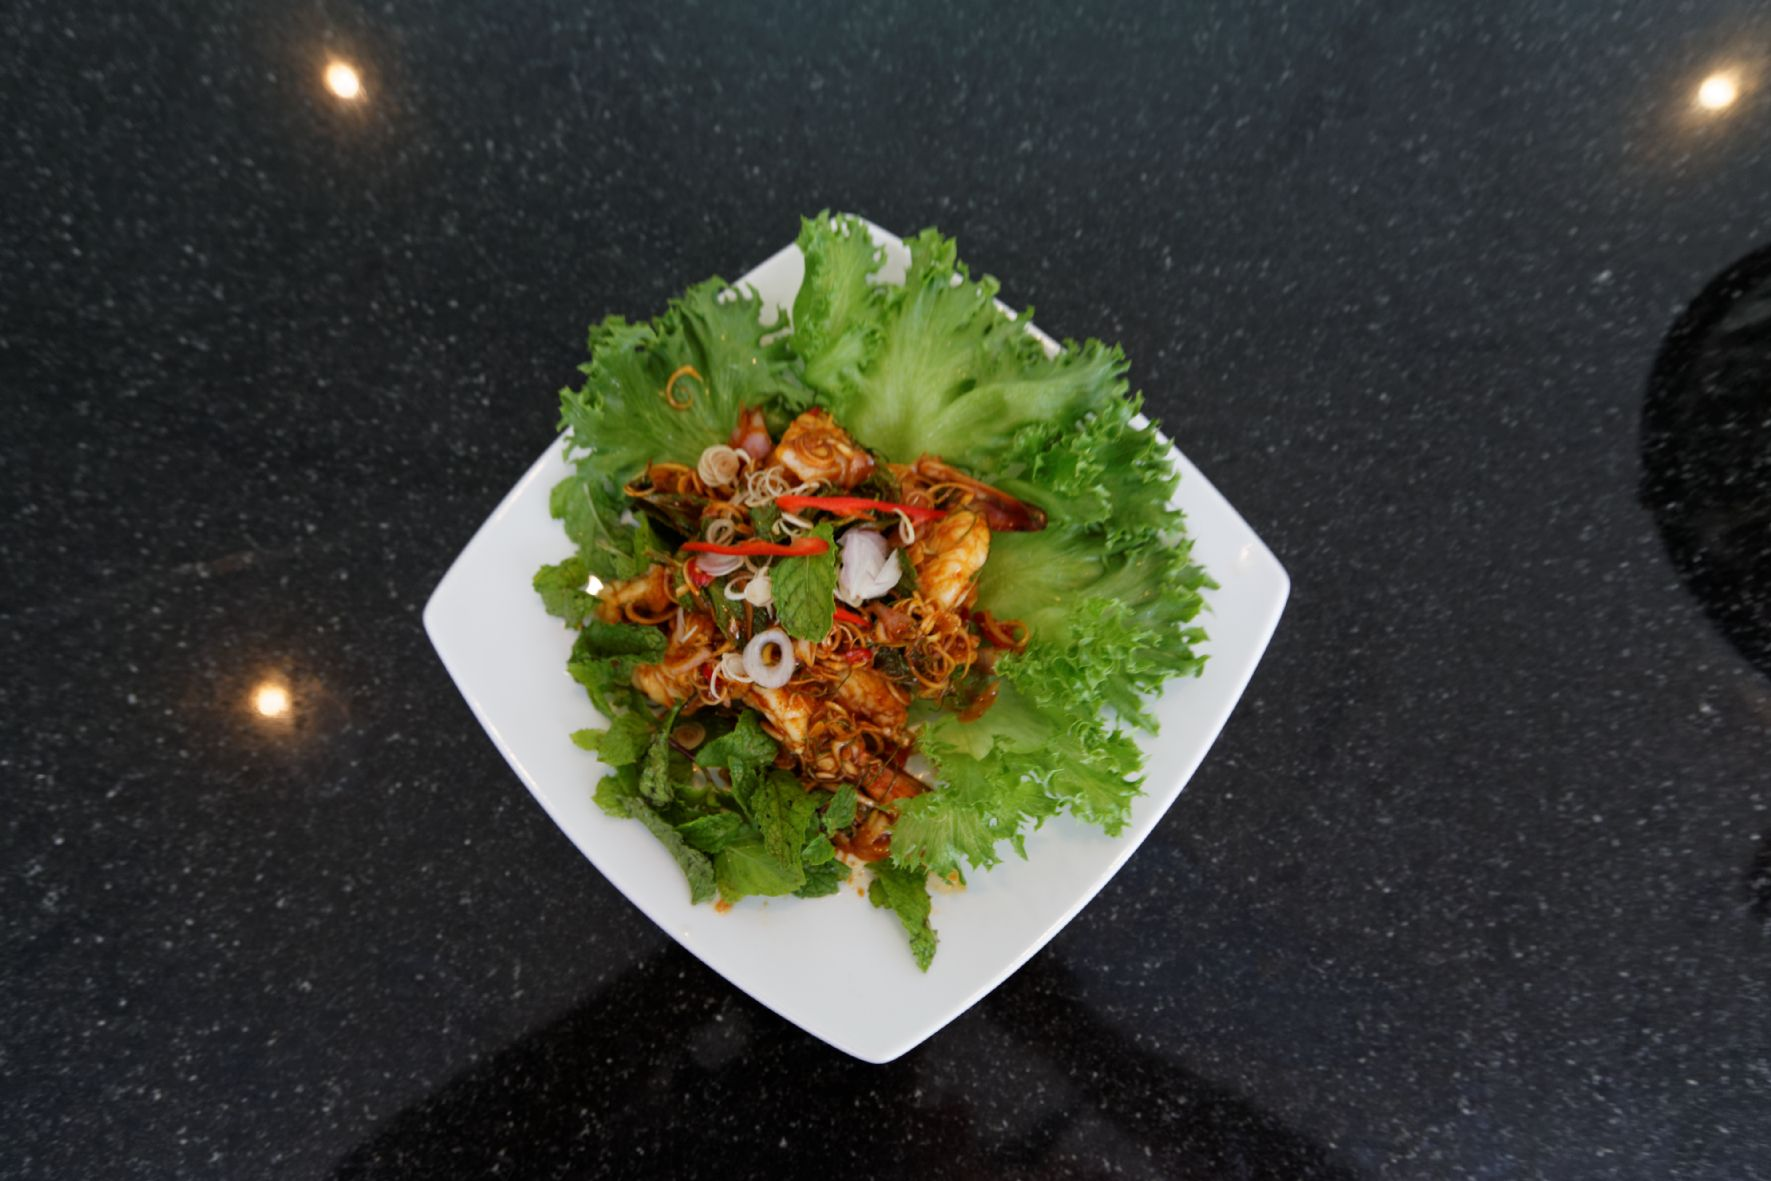 Gung with chilli paste prepared by chefs of luxury villas phuket. recipe see download area of our website http://www.luxuryvillasphuketthailand.com/ Luxury Villas Phuket Thailand